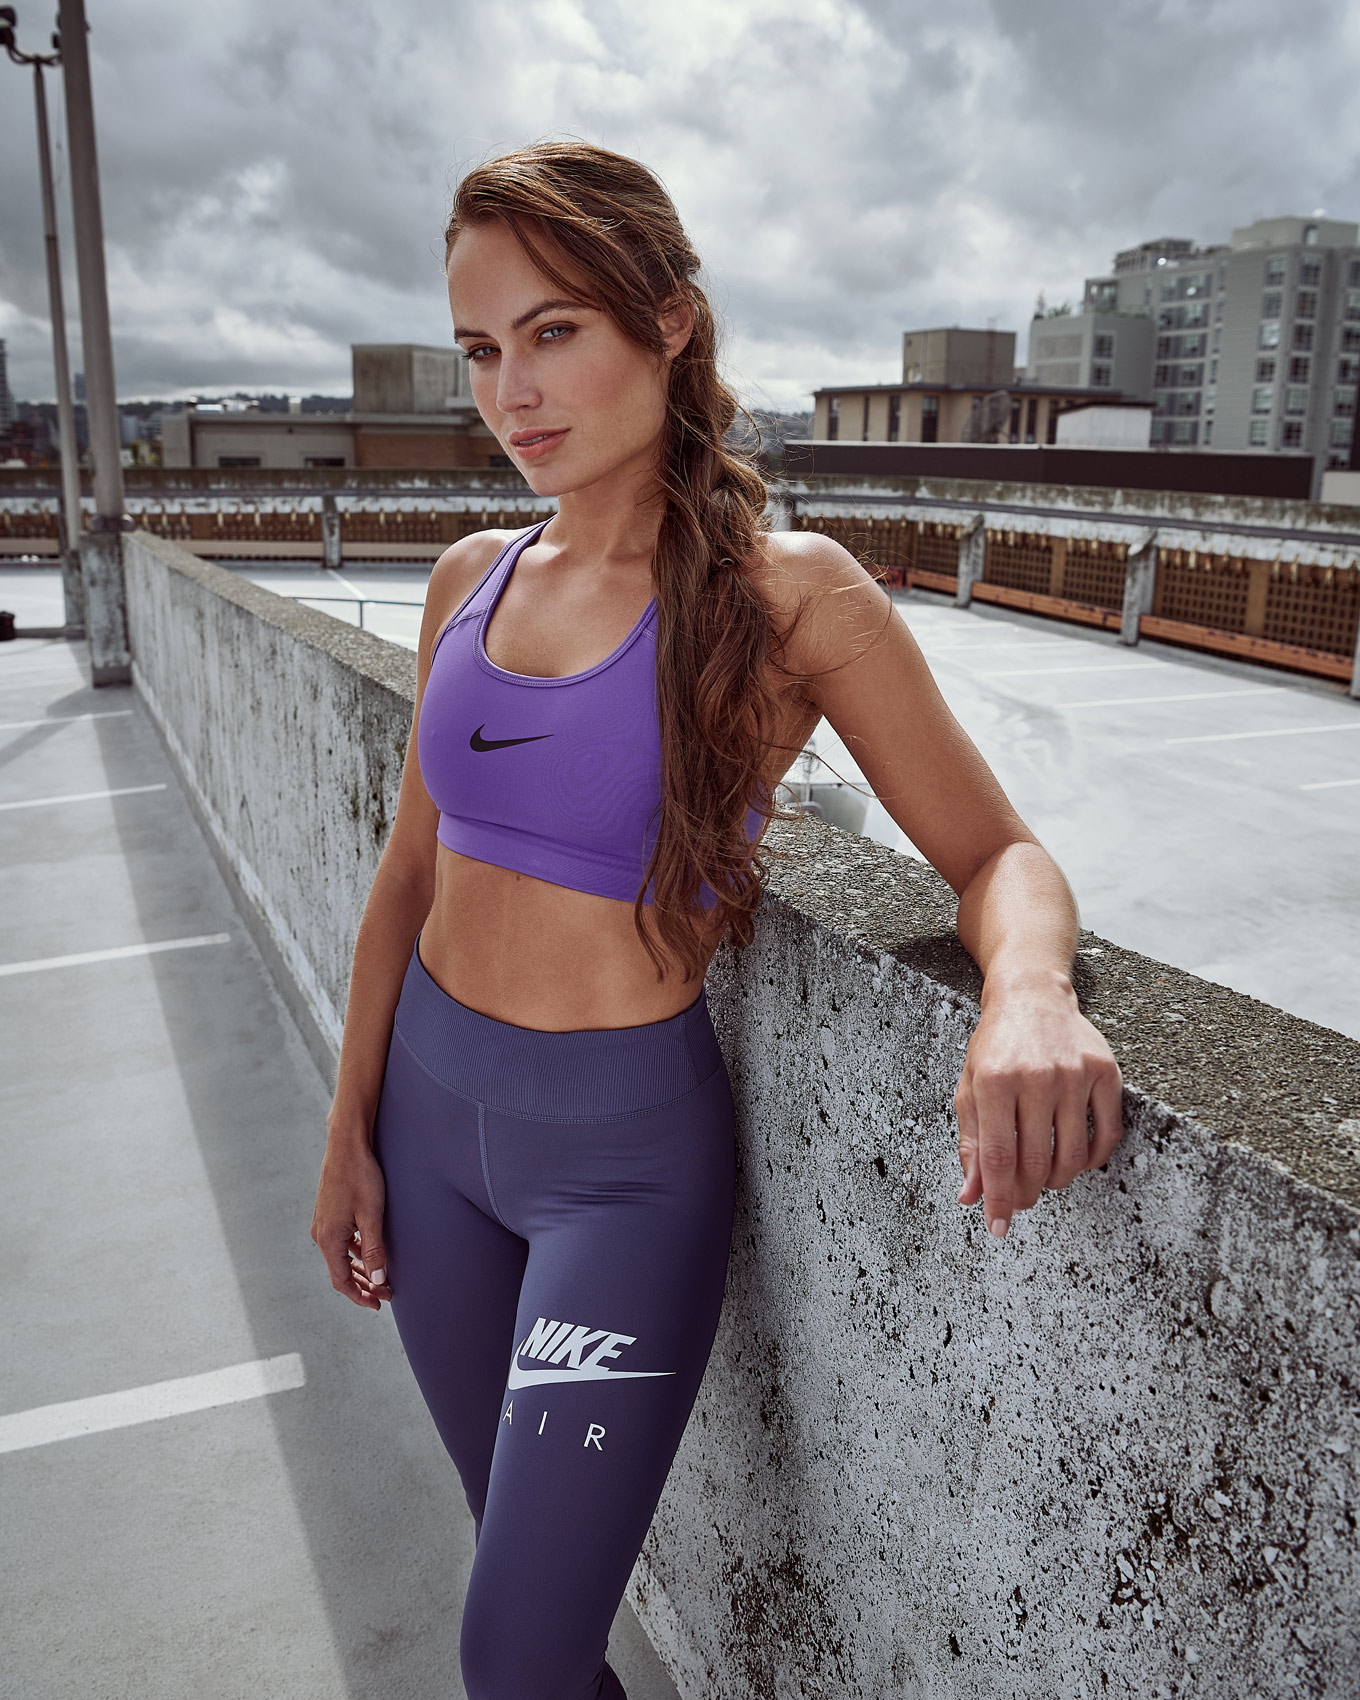 2020-Vancouver-LA-Fitness-Lifestyle-Advertising-Photographer-Erich-Saide-Advertising-Nike-Pro-goals-purple-Praise-Vaughn